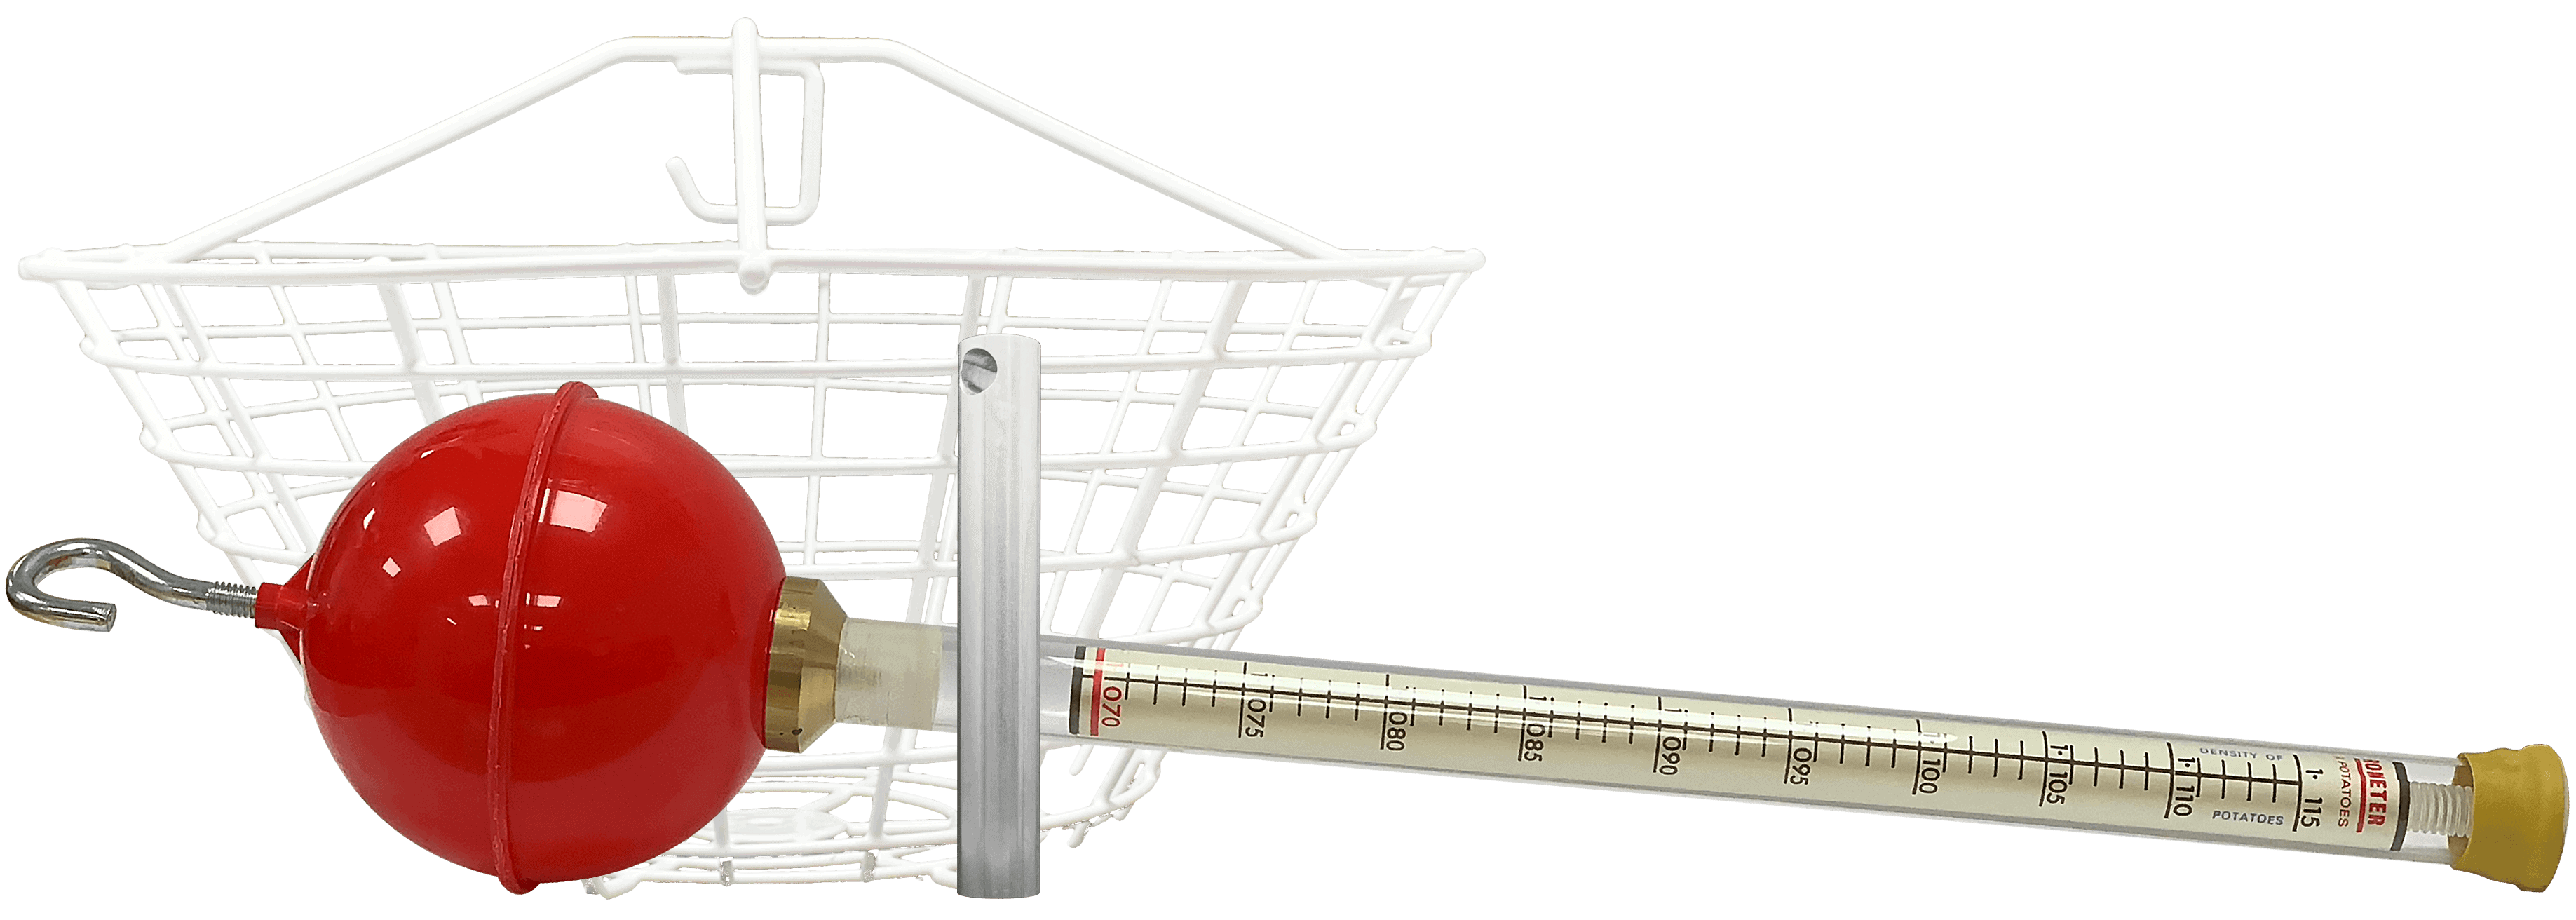 zeal manual hydrometer comes with calibration weight and basket